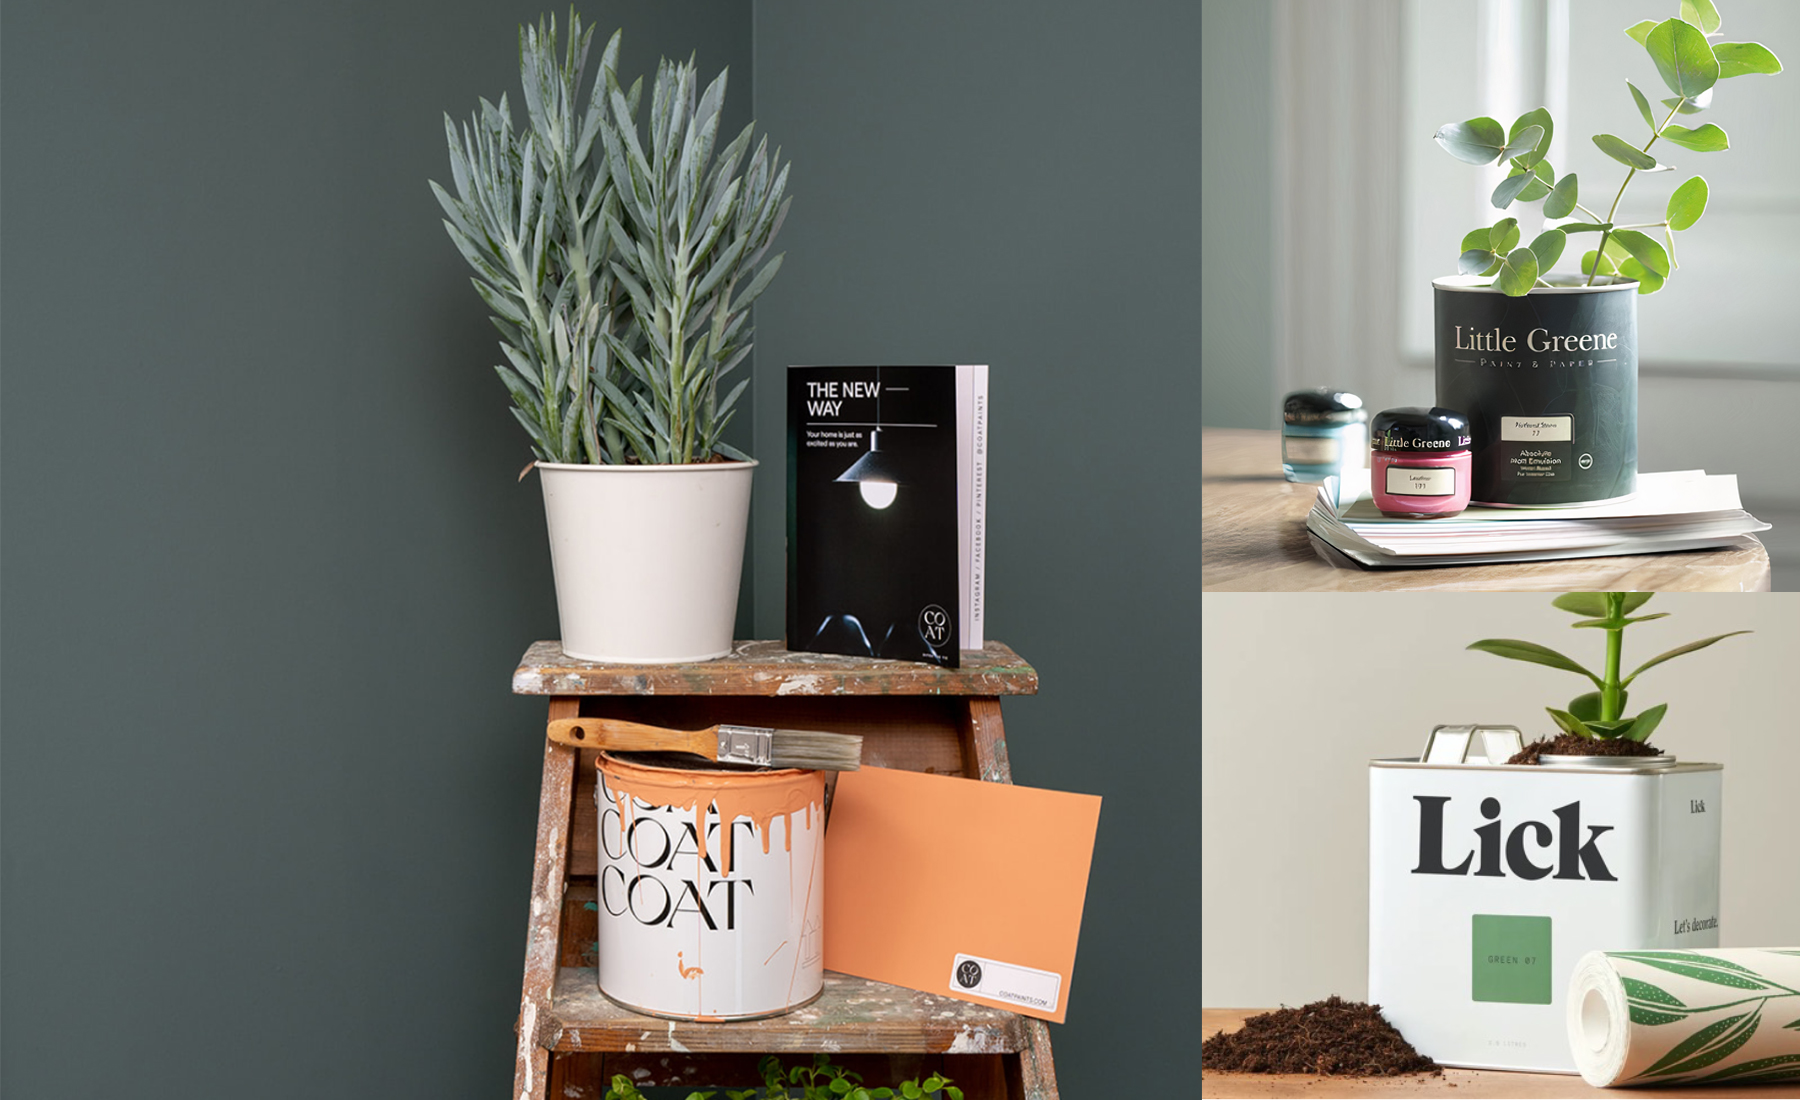 Not all paint is made equal | Sustainable paint brands.